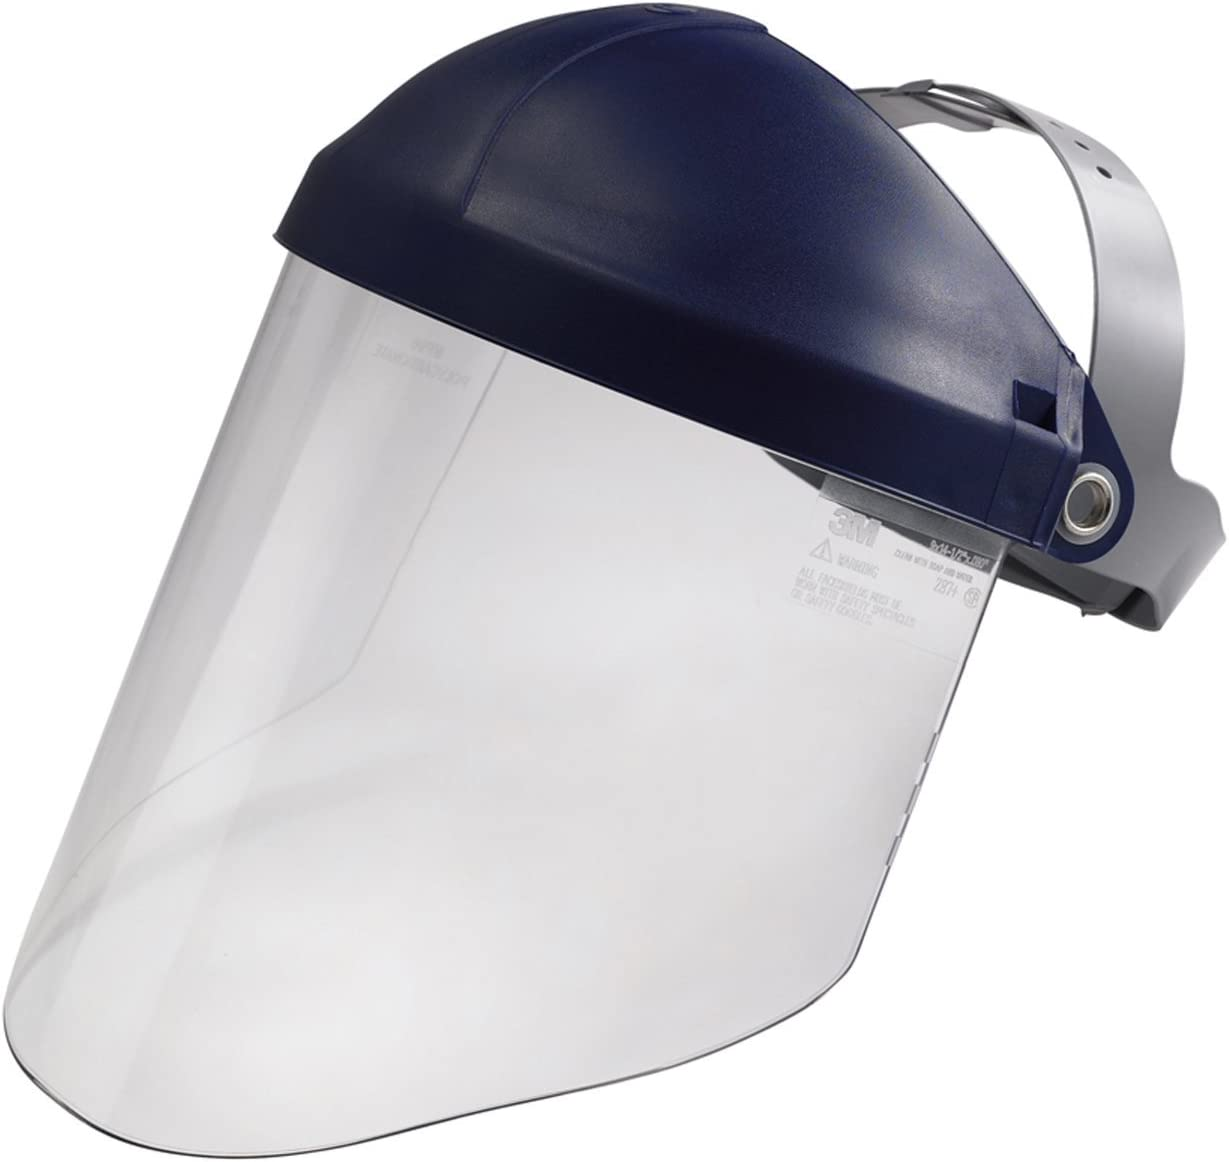 Now free Super sale period limited shipping 3M Professional Faceshield 2-PACK